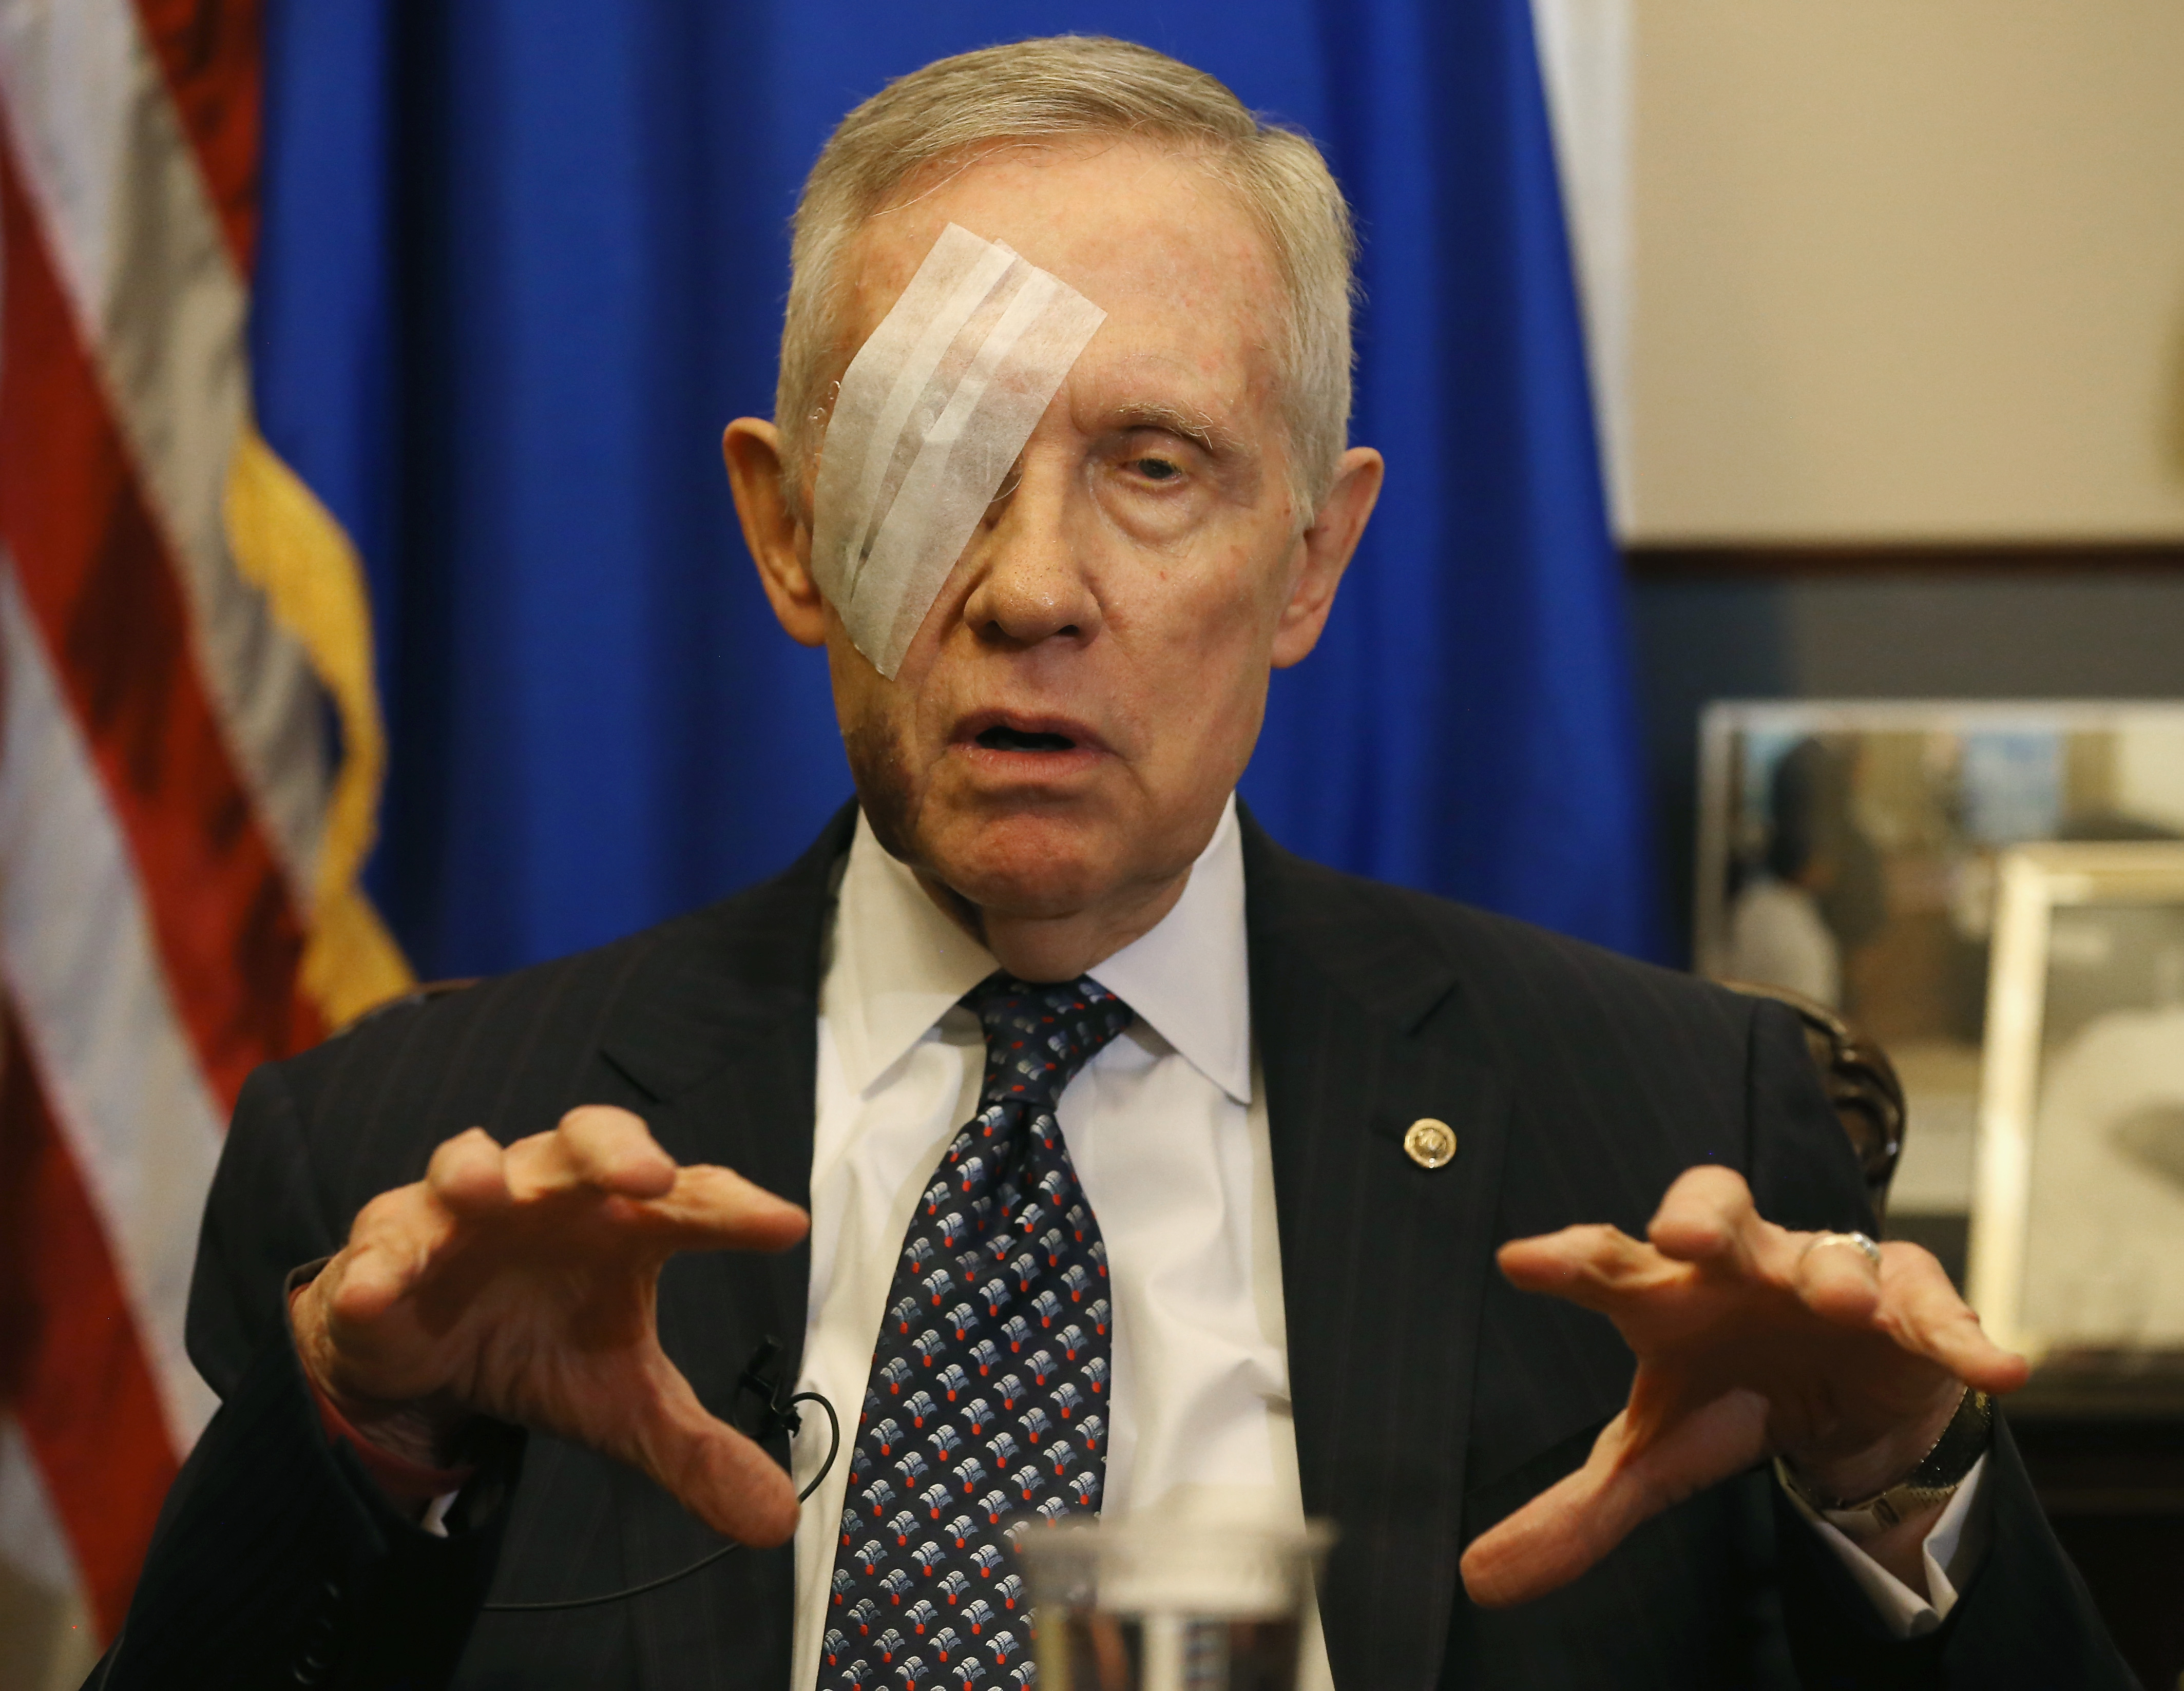 Senate Minority Leader Harry Reid (D-AZ) speaks during a pen and pad session with reporters at the US Capitol on Jan. 22, 2015 in Washington D.C.